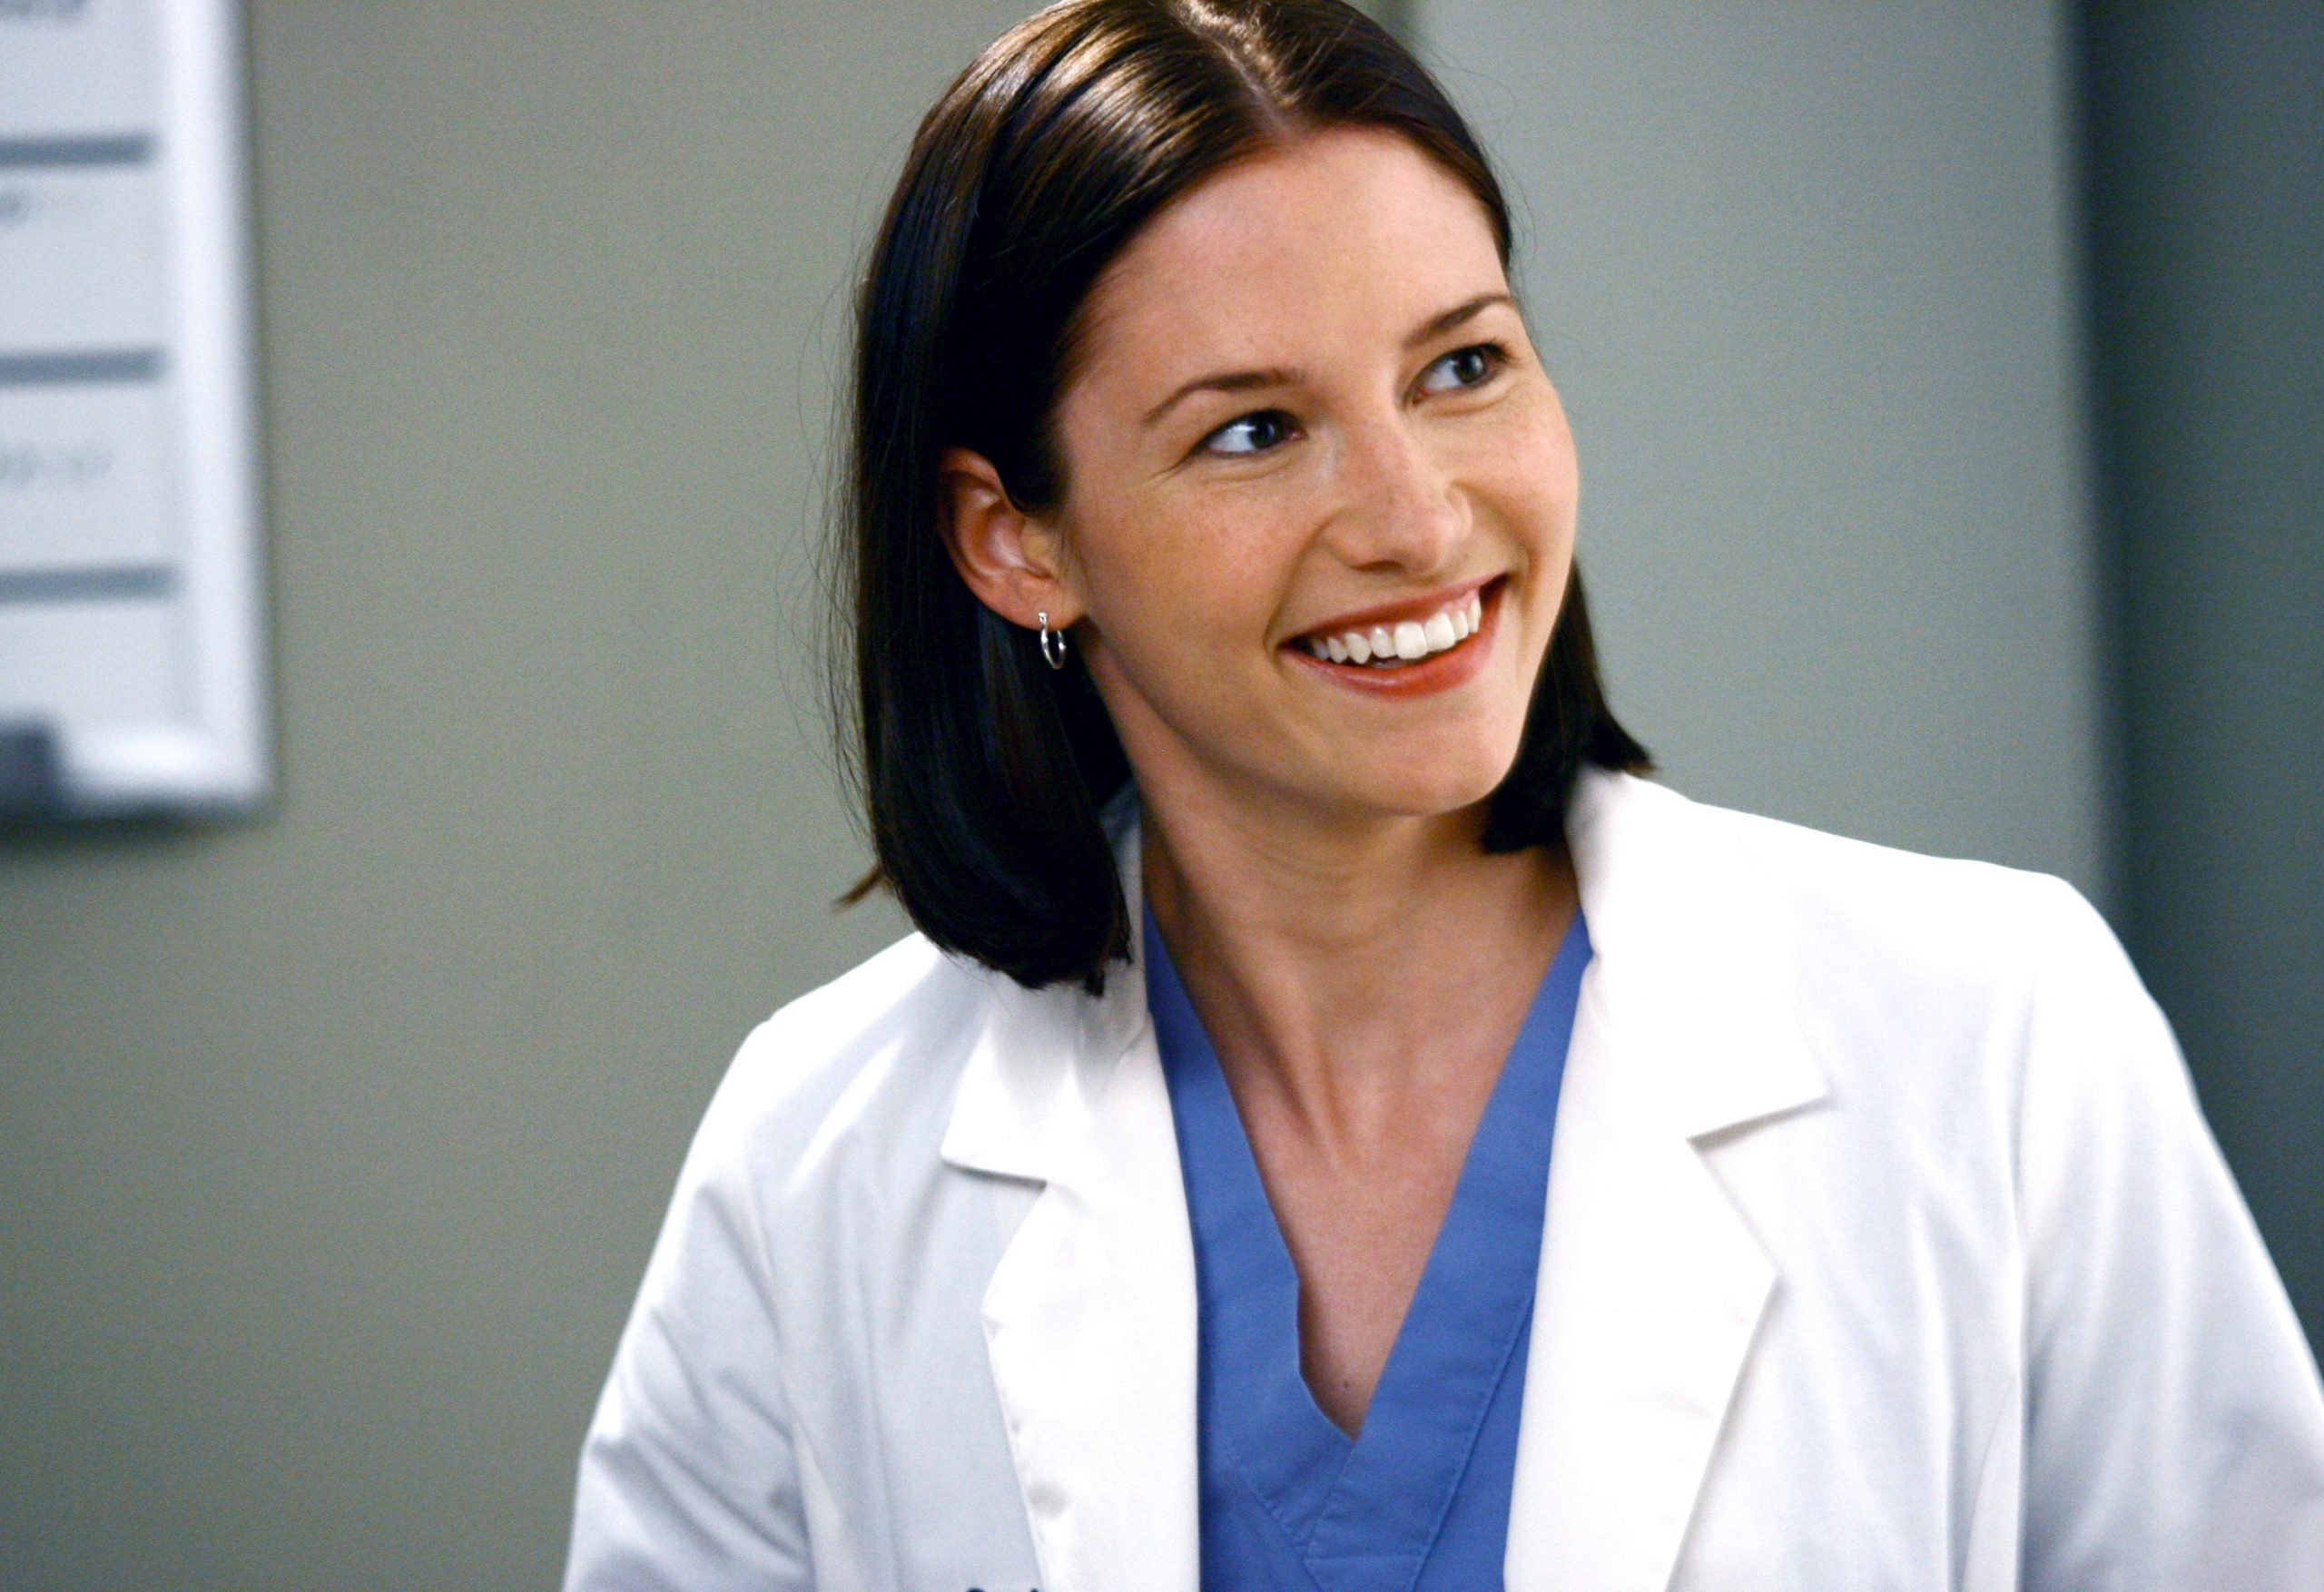 Who Does Lexie Grey End Up With?